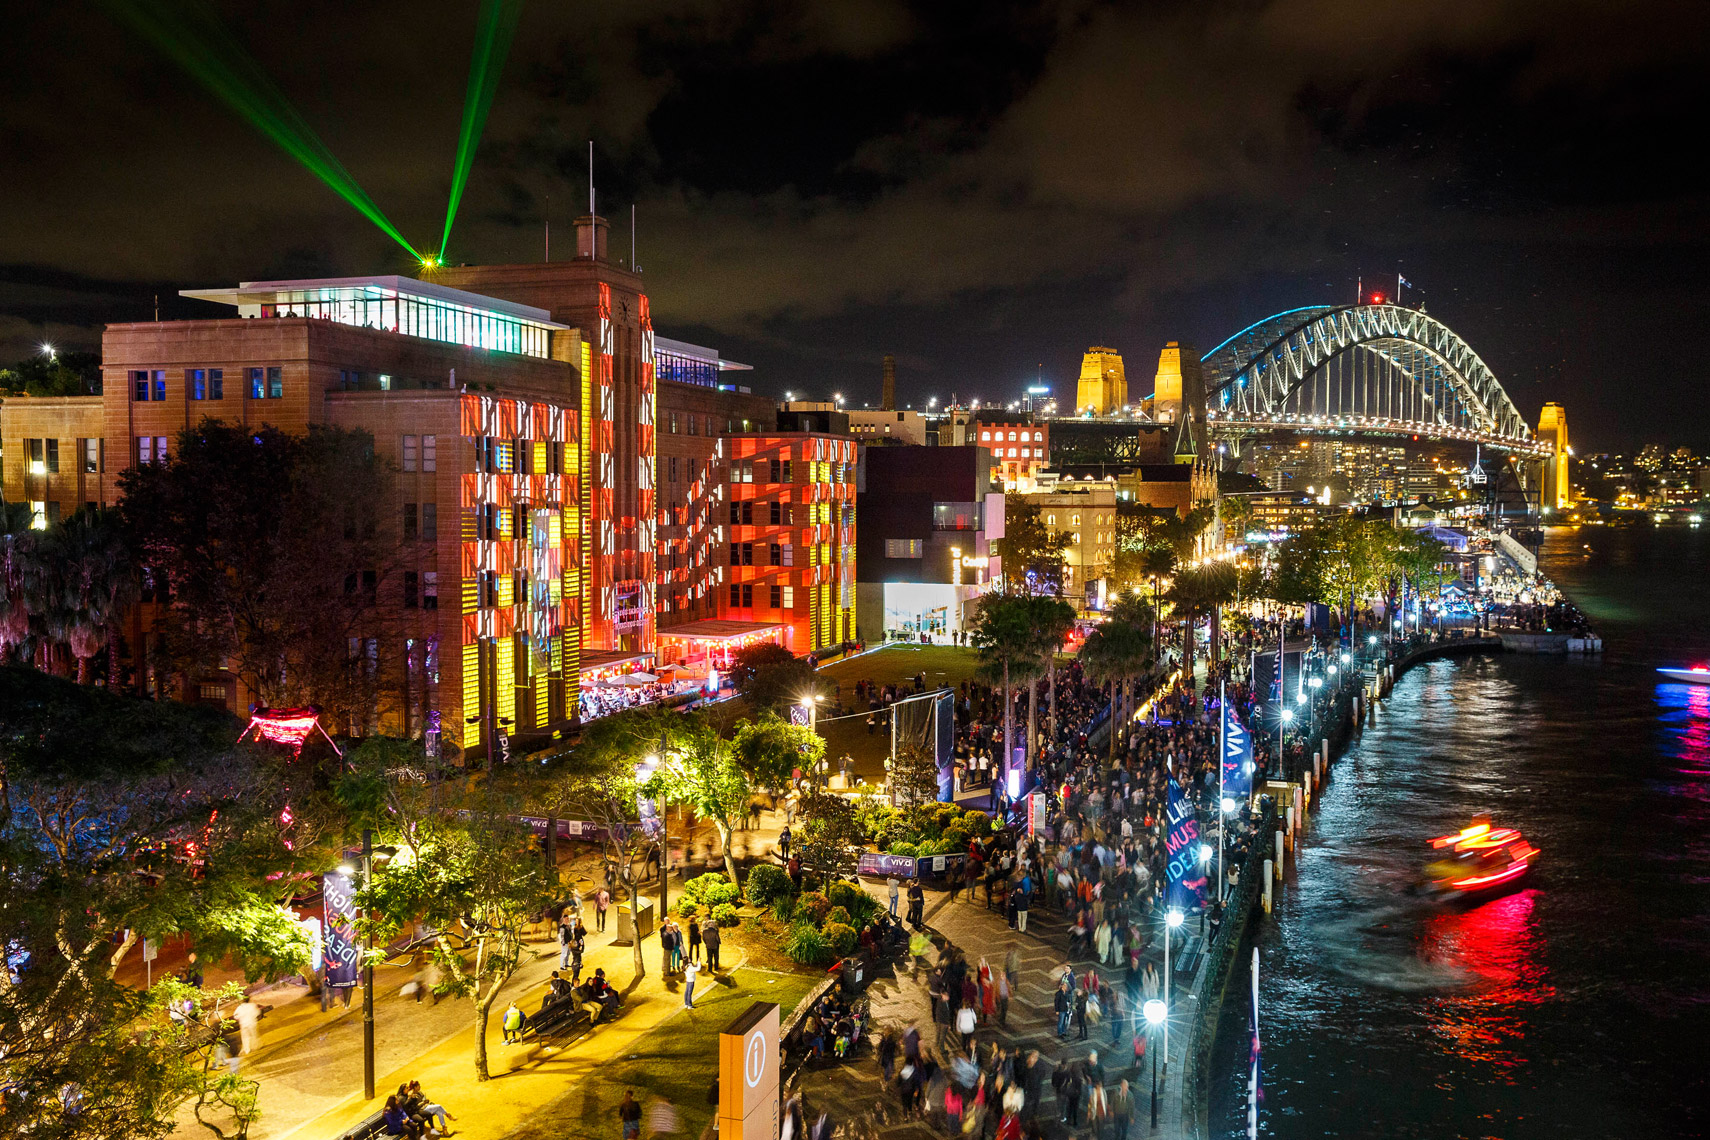 Vivid-Sydney-2014_MCA-view-from-Cahill-Expressway_James-Horan_DNSW_014